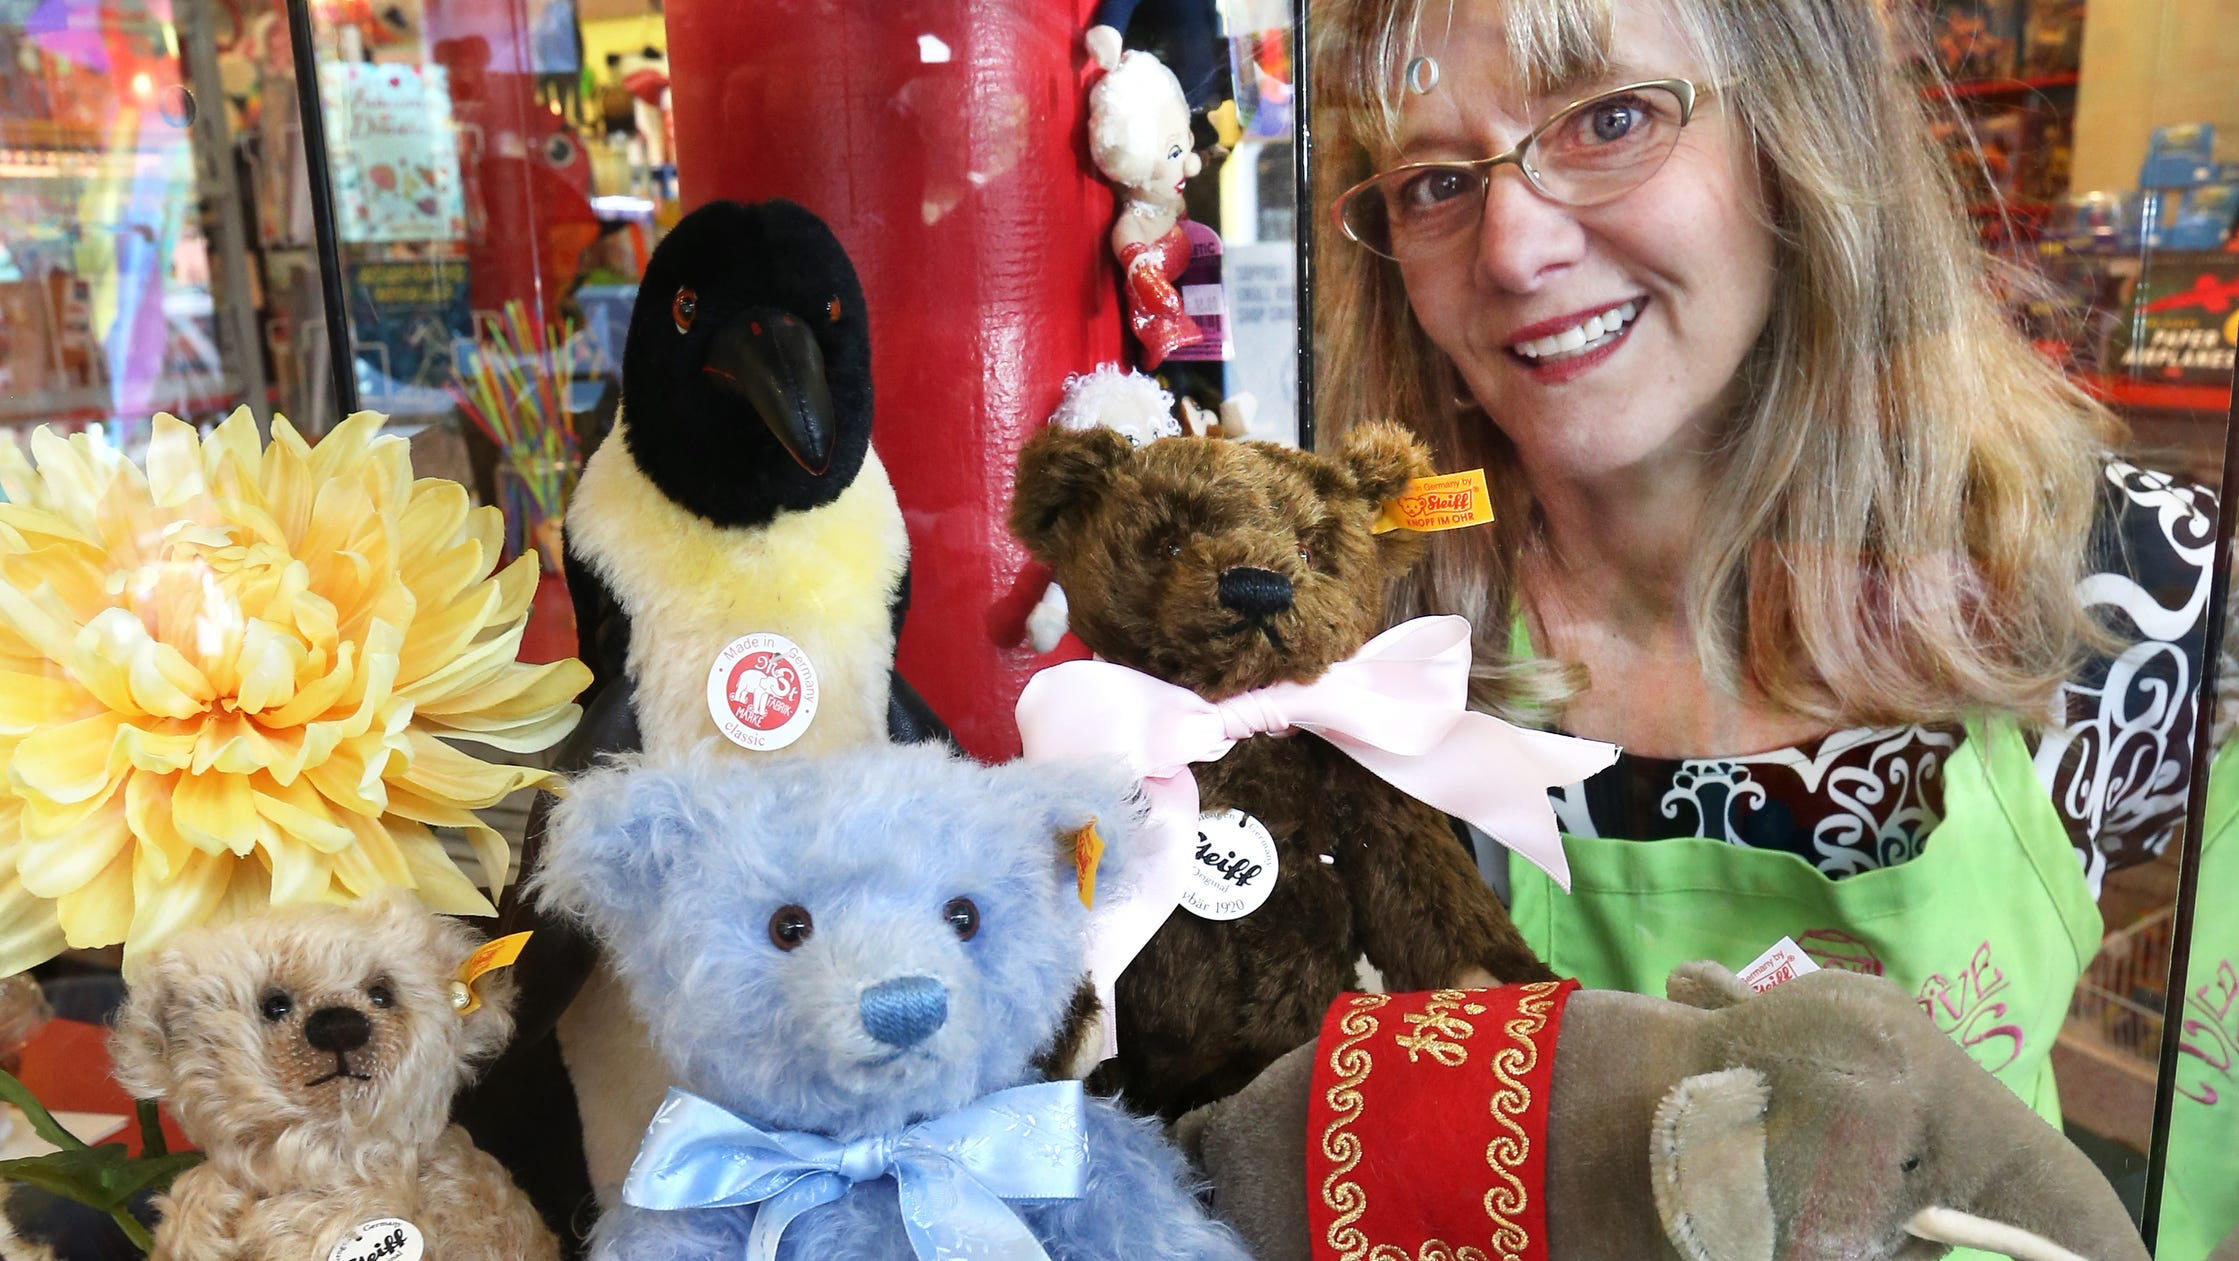 Mass Ave Toys owner Natalie Canull, who opened the independent business at 409 Mass Ave. is 2008, is shown with classic German-made Steiff teddy bears on Tuesday, July 1, 2014.